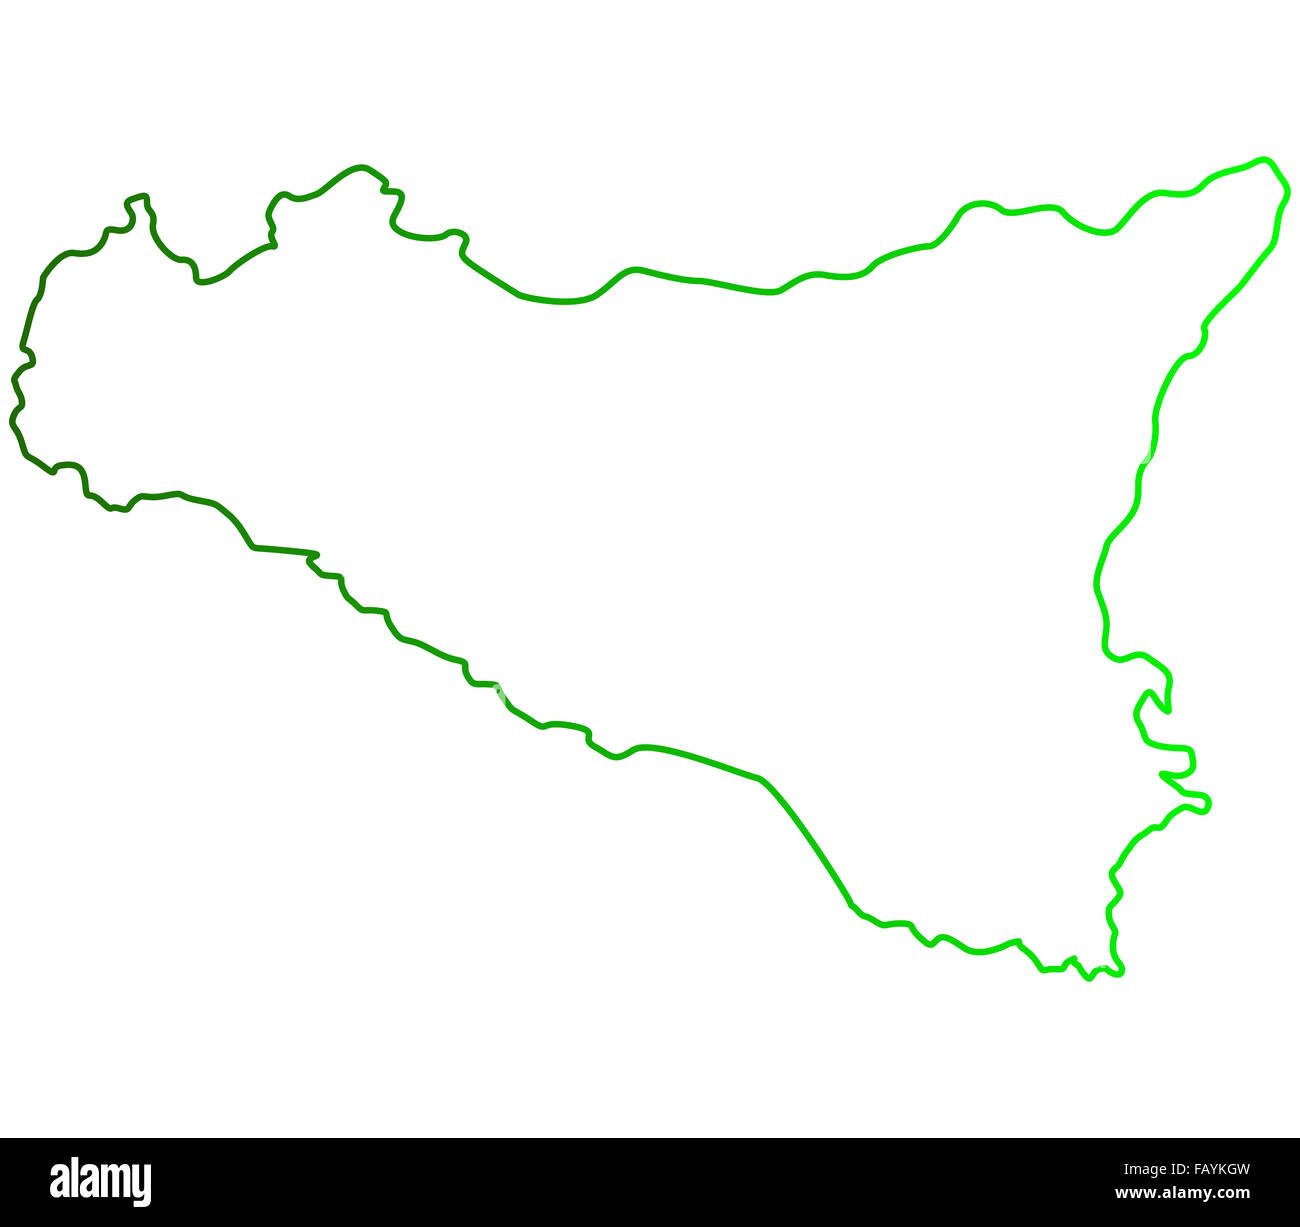 Sicily map on a white background Stock Photo: 92806473 - Alamy